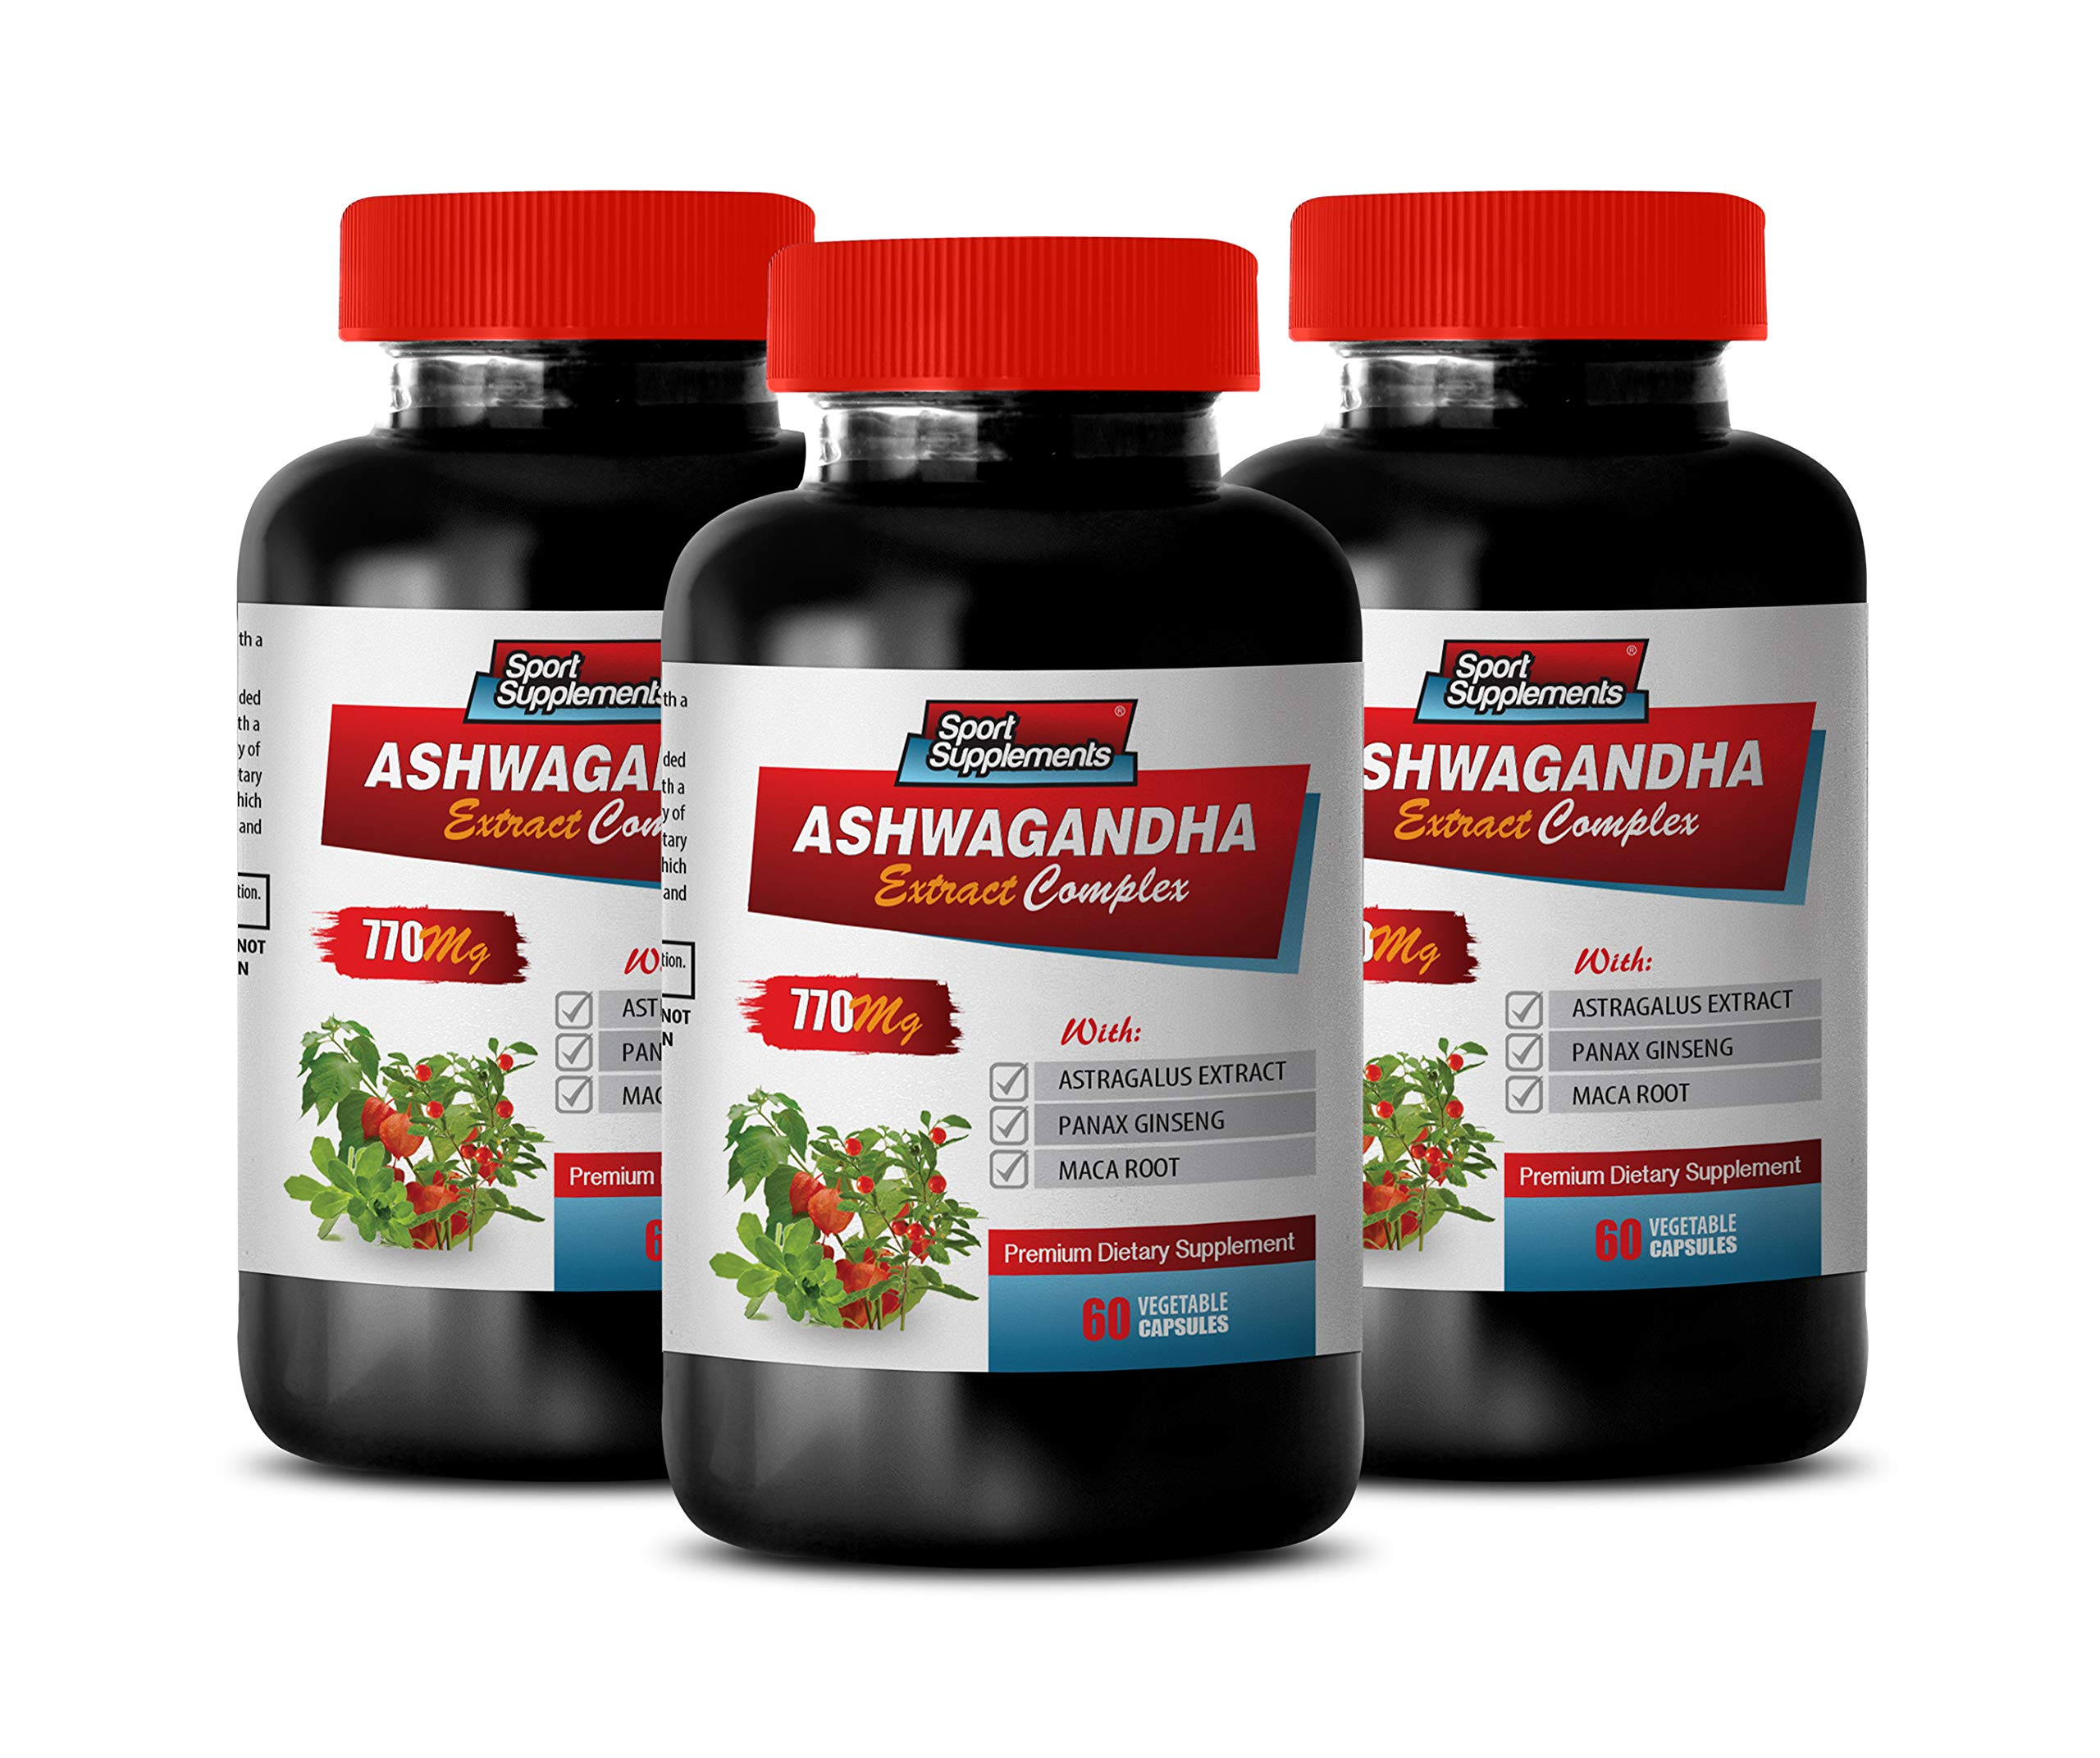 Immune Support Detox - ASHWAGANDHA Extract Complex - Premium Dietary Supplements - ashwagandha Non GMO - 3 Bottles 180 Capsules